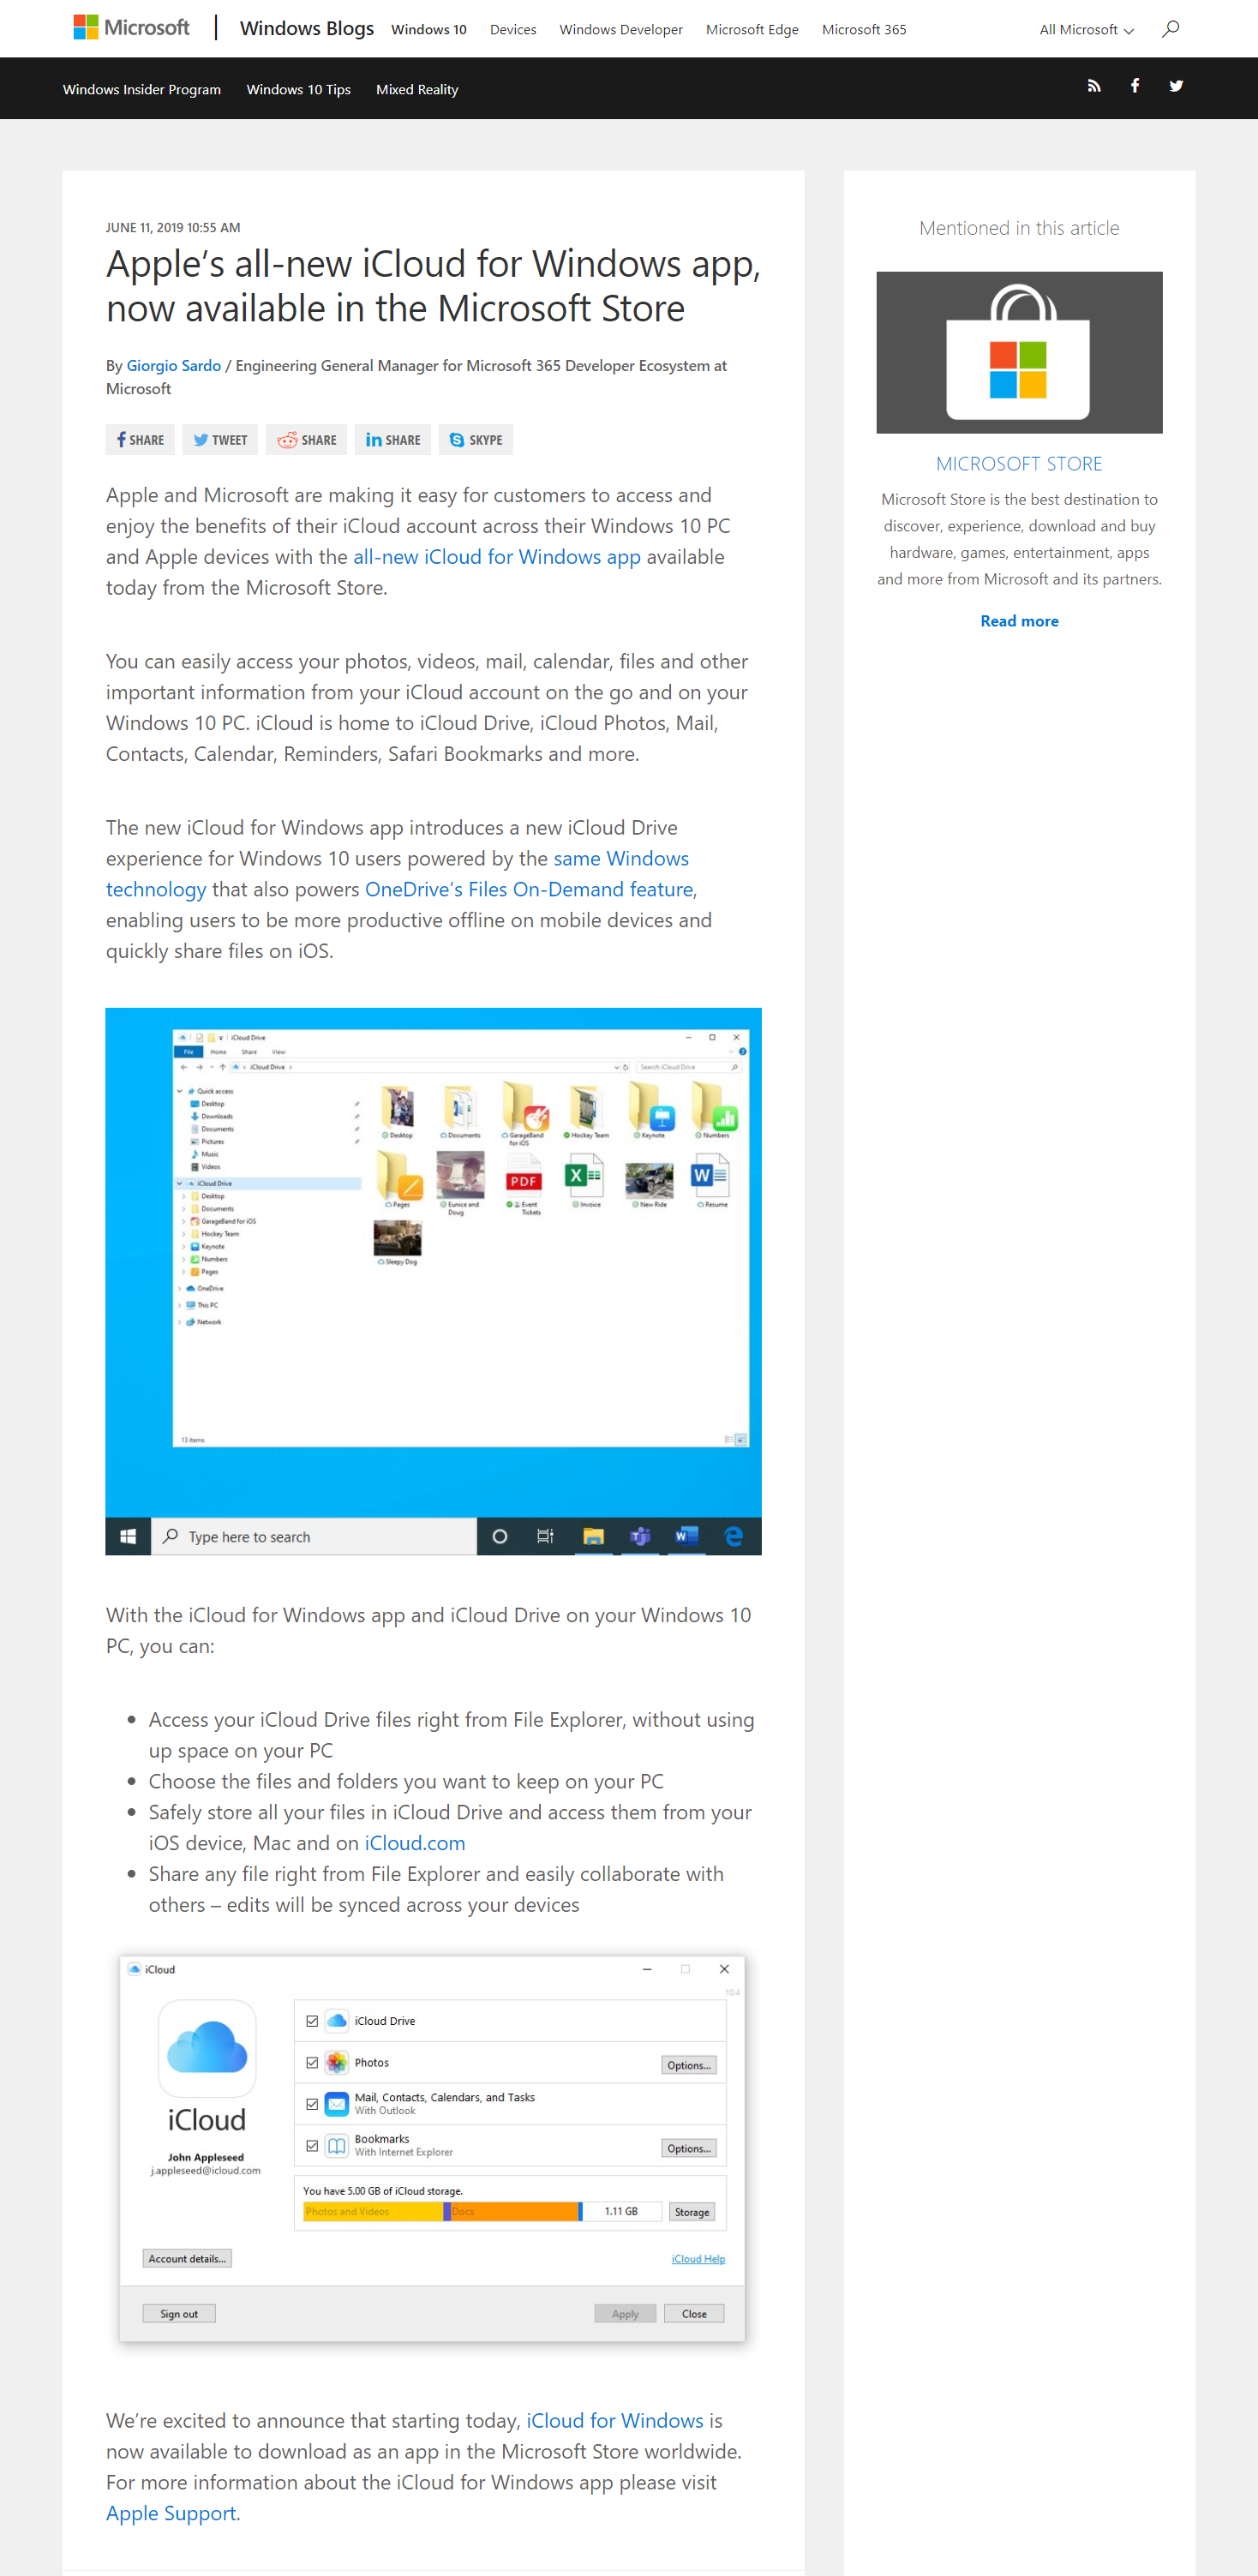 FireShot Capture 014 - Apple's all-new iCloud for Windows app, now available in the Microsof_ - blogs.windows.com.png